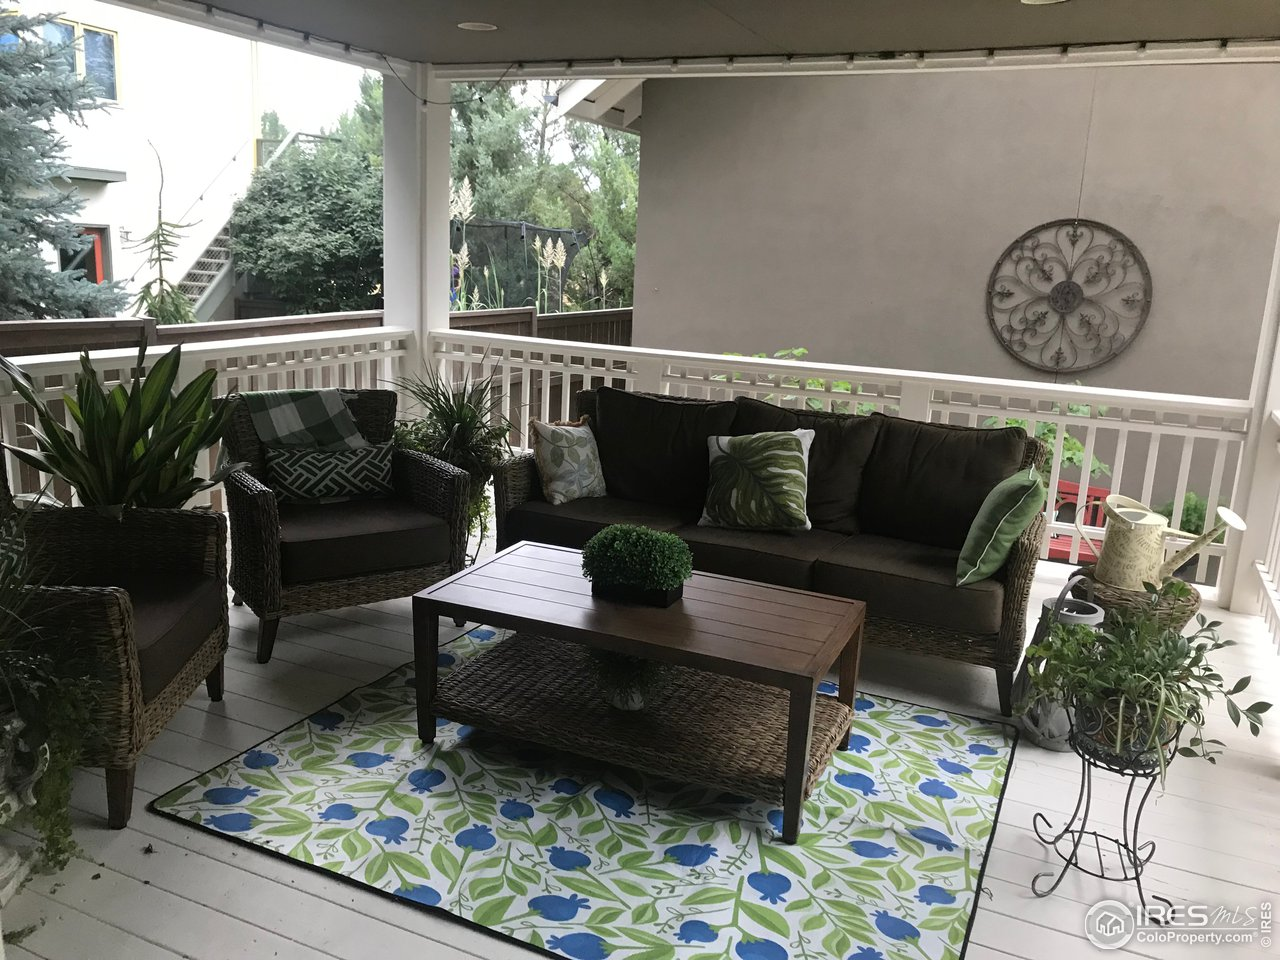 This covered patio is just like a 2nd living room